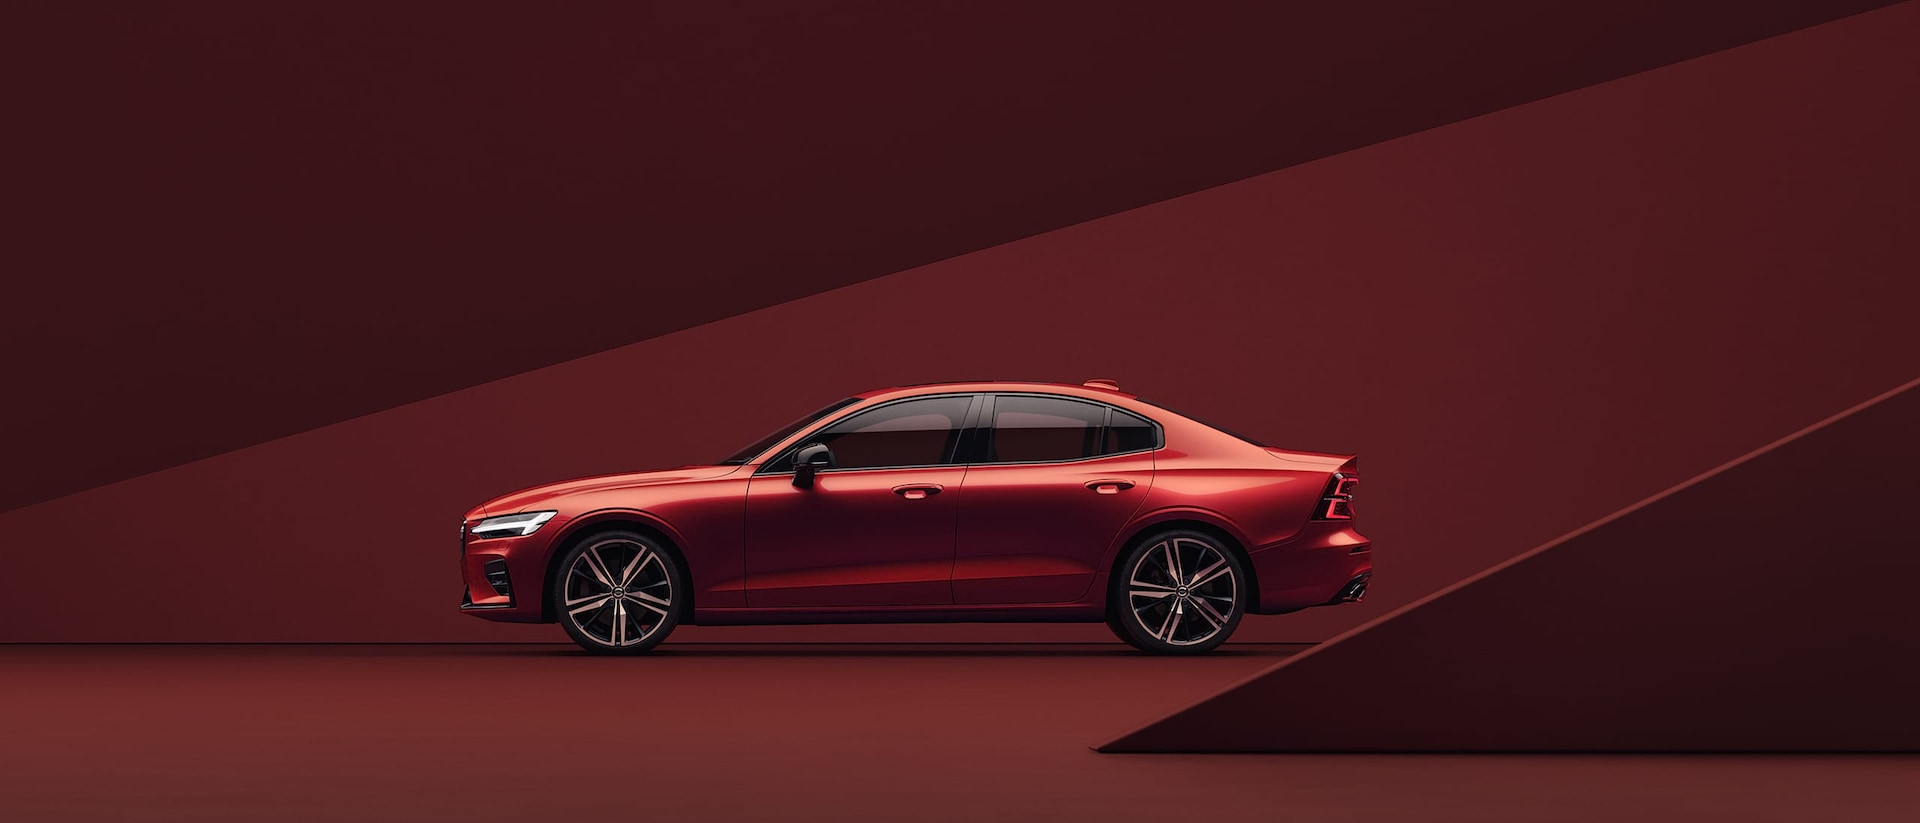 A red Volvo S60, parked in red surroundings.